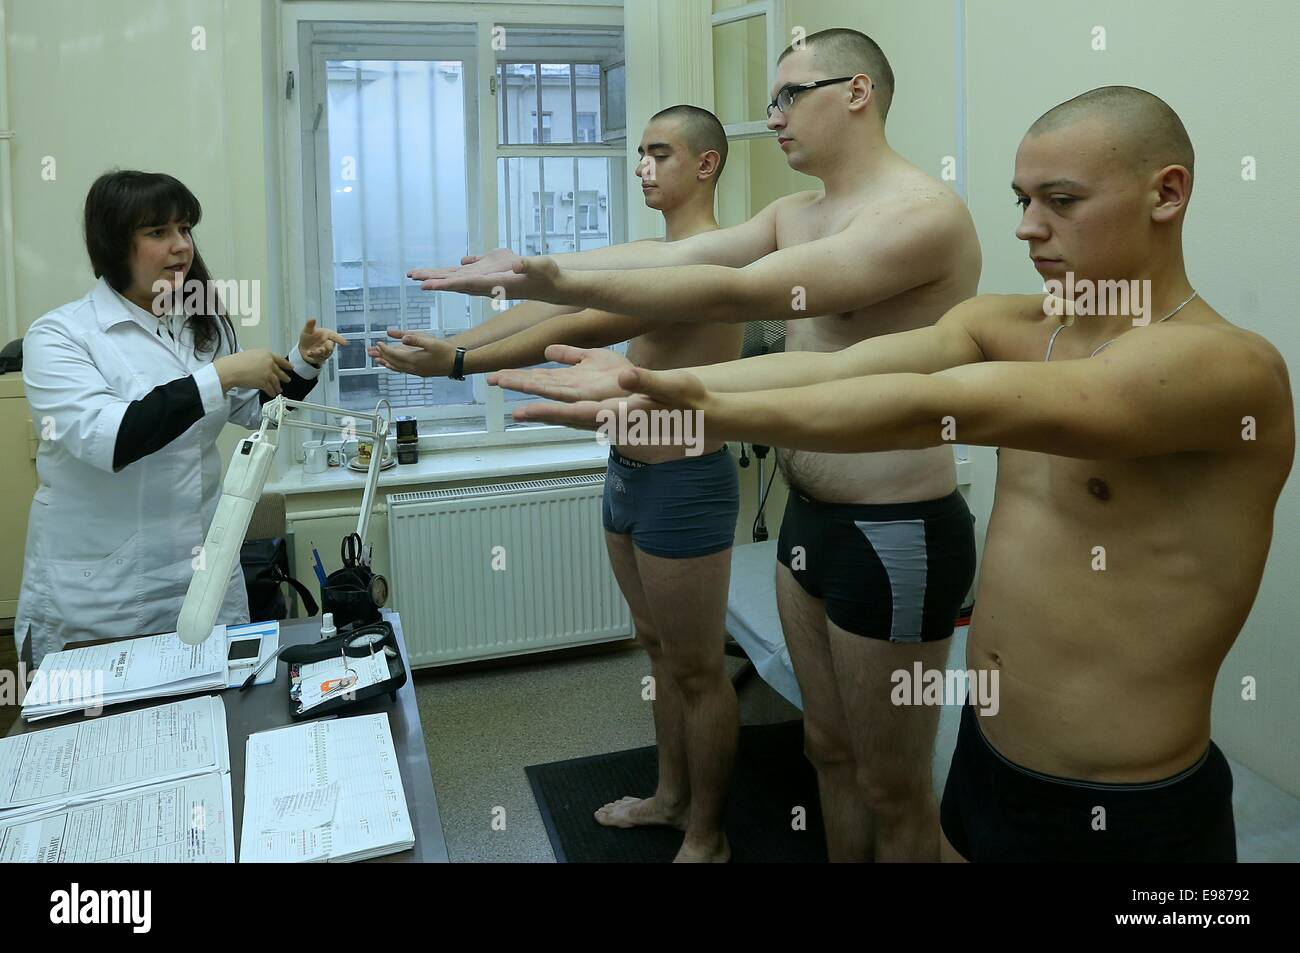 Chinese military medical inspection